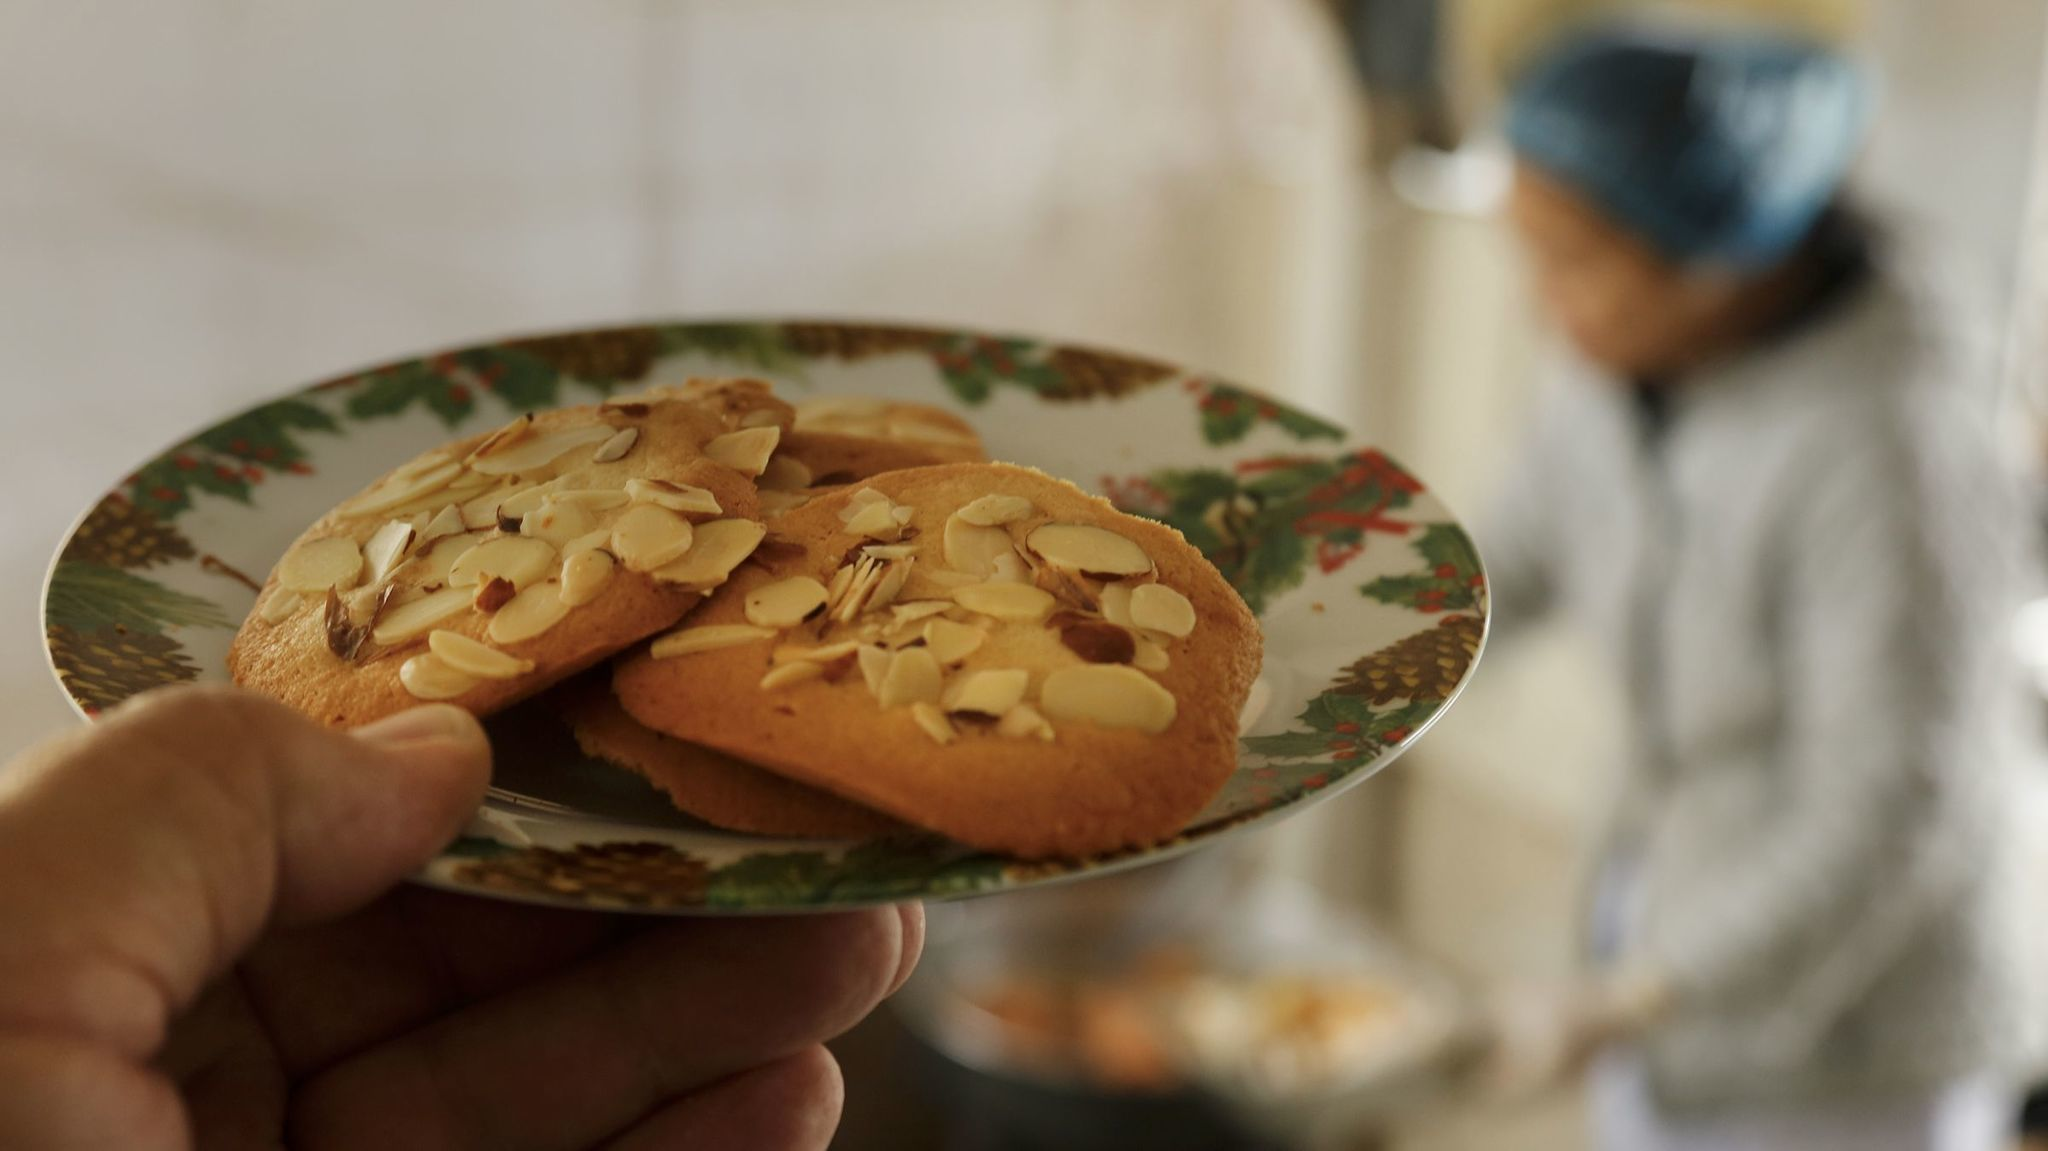 Crispy almond cookies add to Hue Phan's repertoire, baked before the meals are delivered..